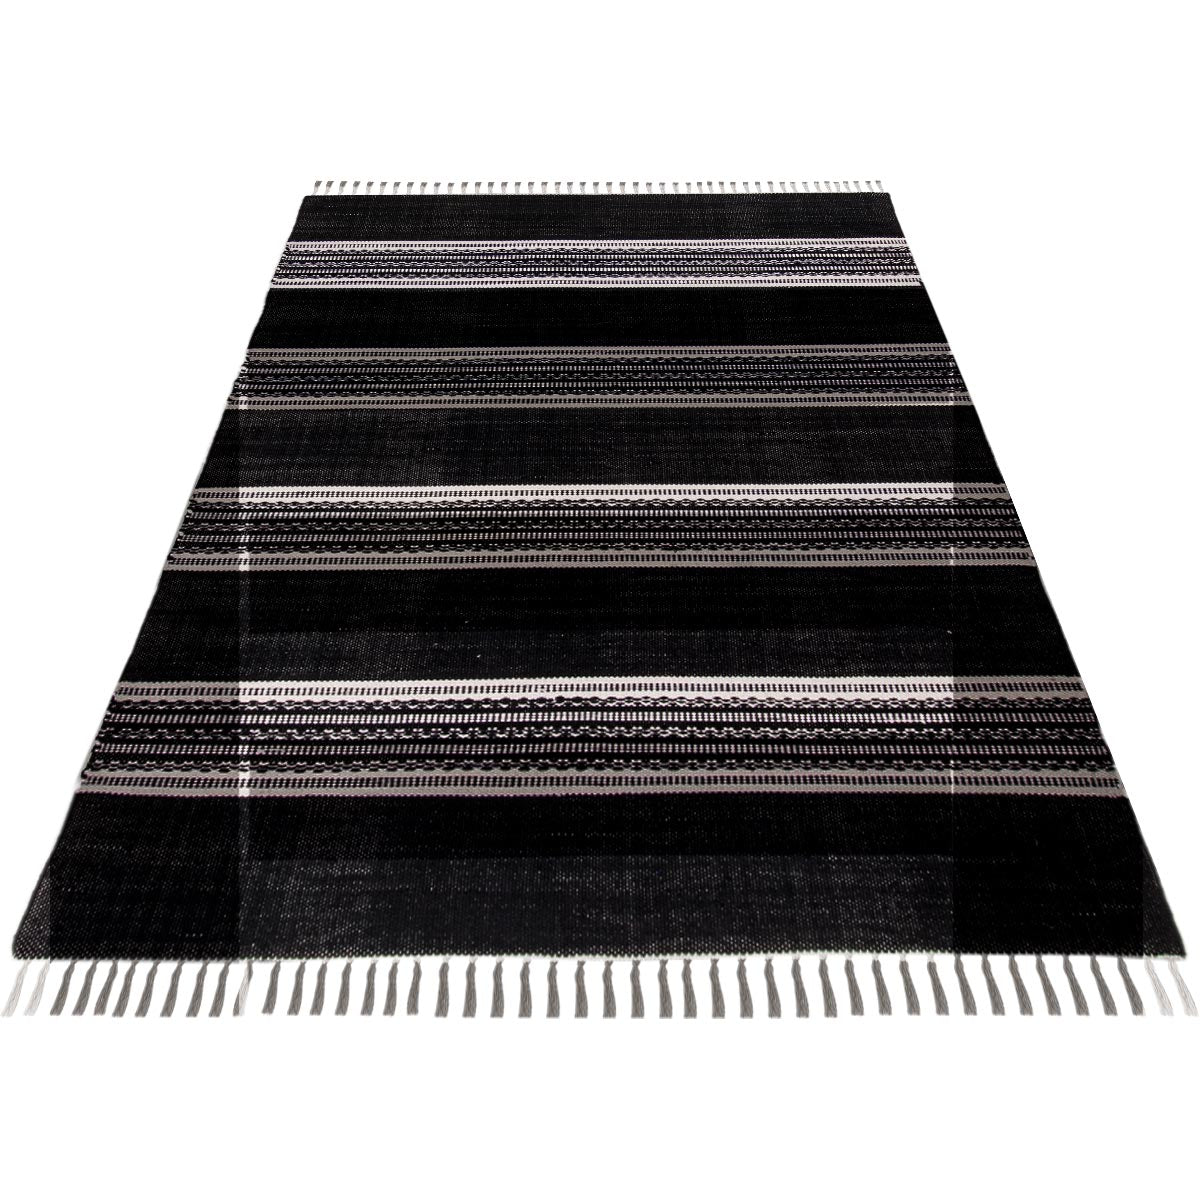 Chicago Rug 02 Black 2